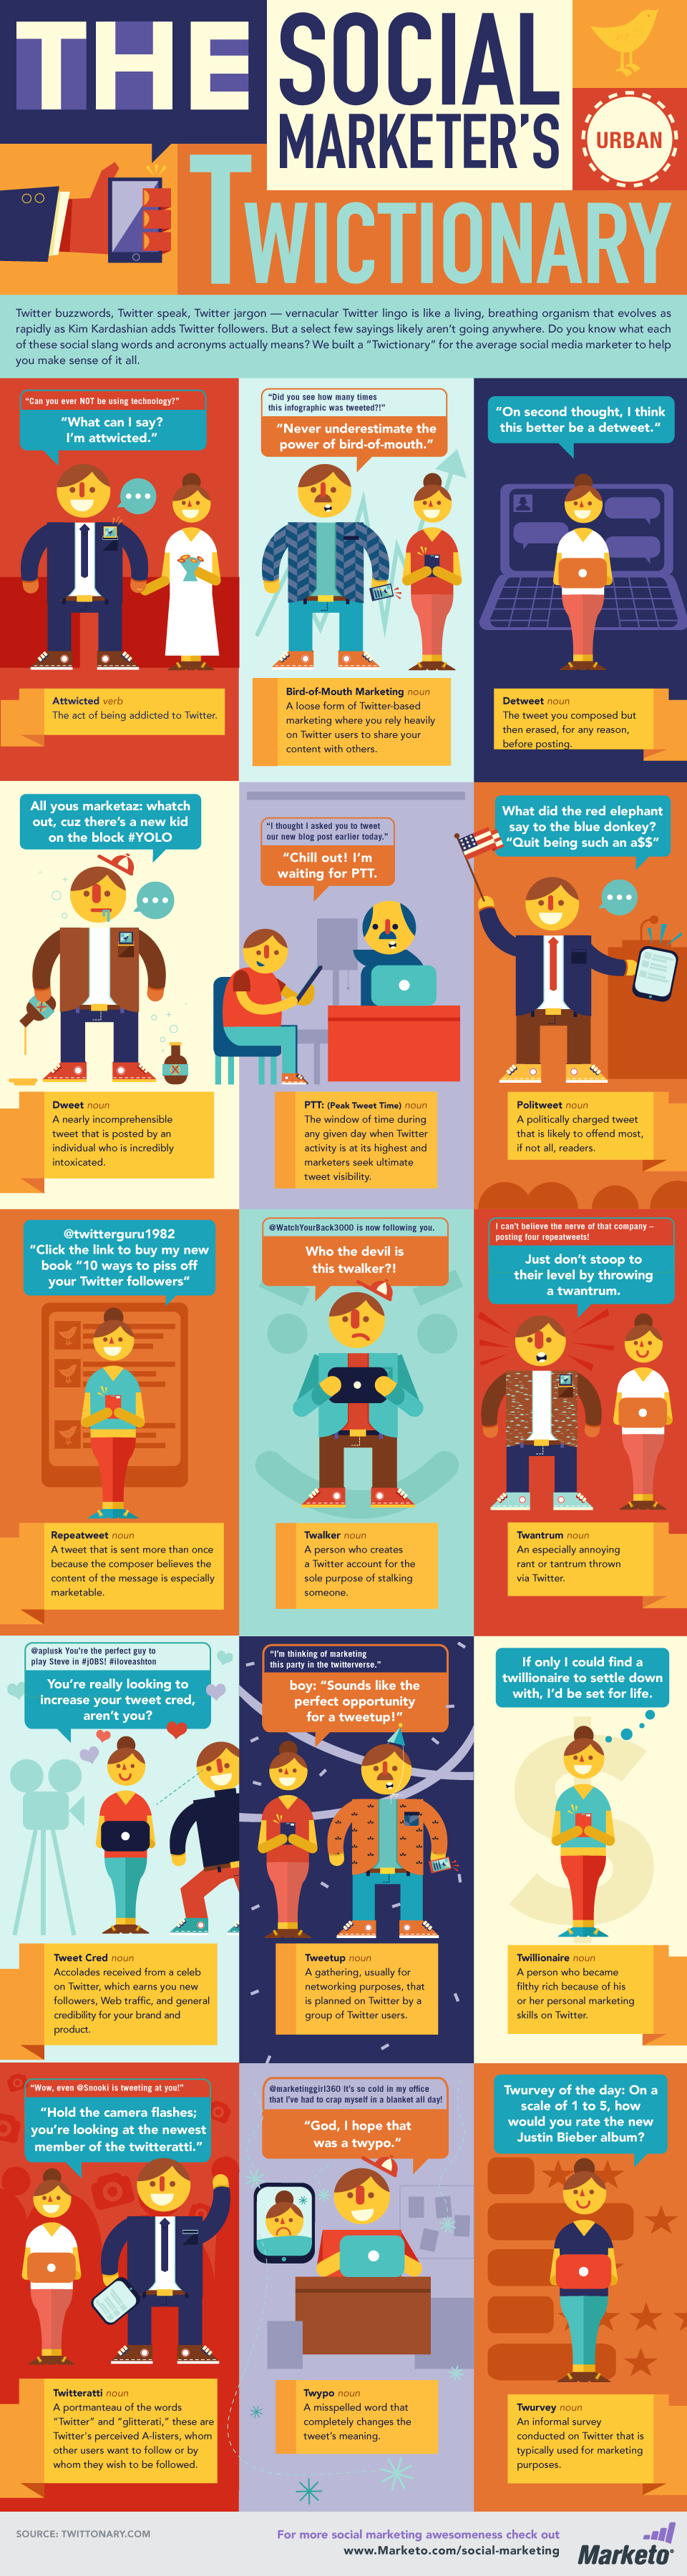 The Social Marketer's Urban Twictionary [Infographic]